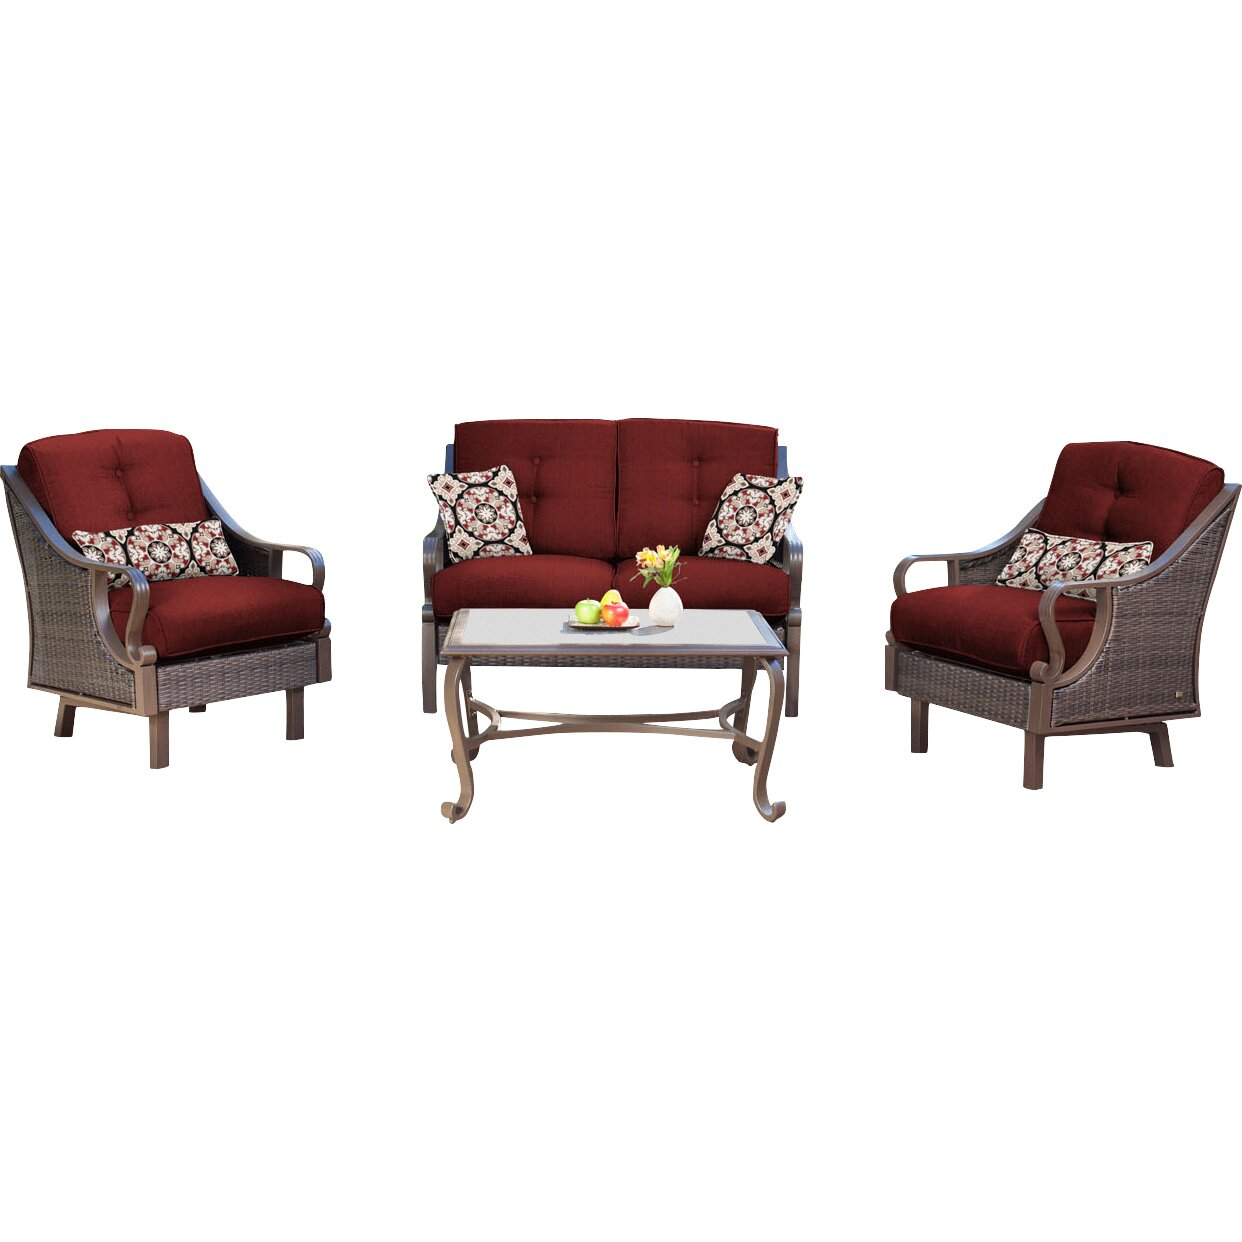 Outdoor Patio Furniture Cushions Bellevue, Outdoor, Best Home And ..